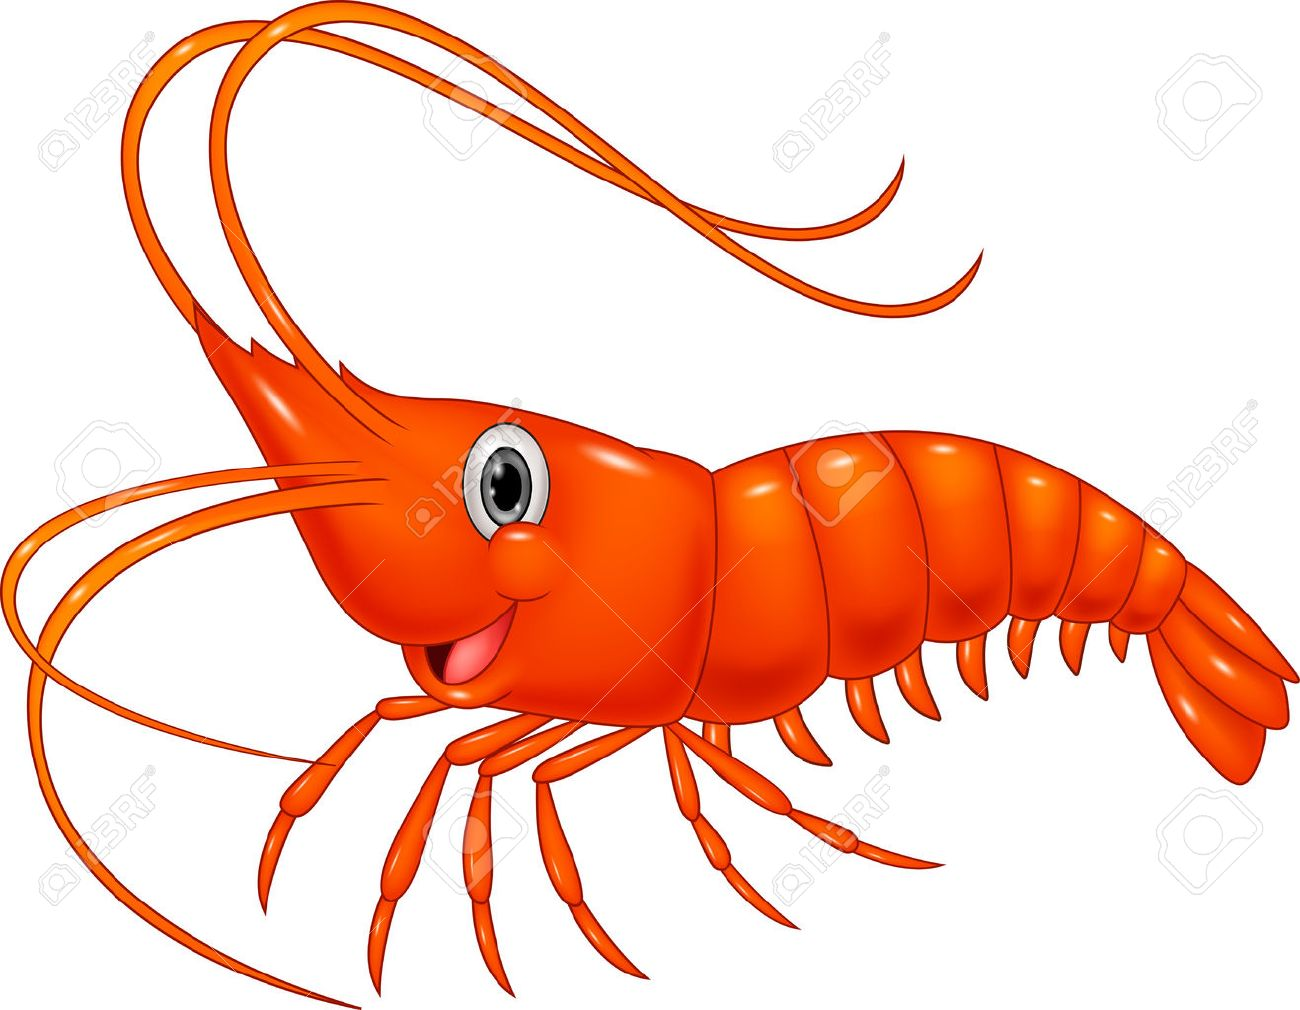 21 566 shrimp stock illustrations cliparts and royalty free shrimp rh 123rf com shrimp clipart free shrimp clipart black and white